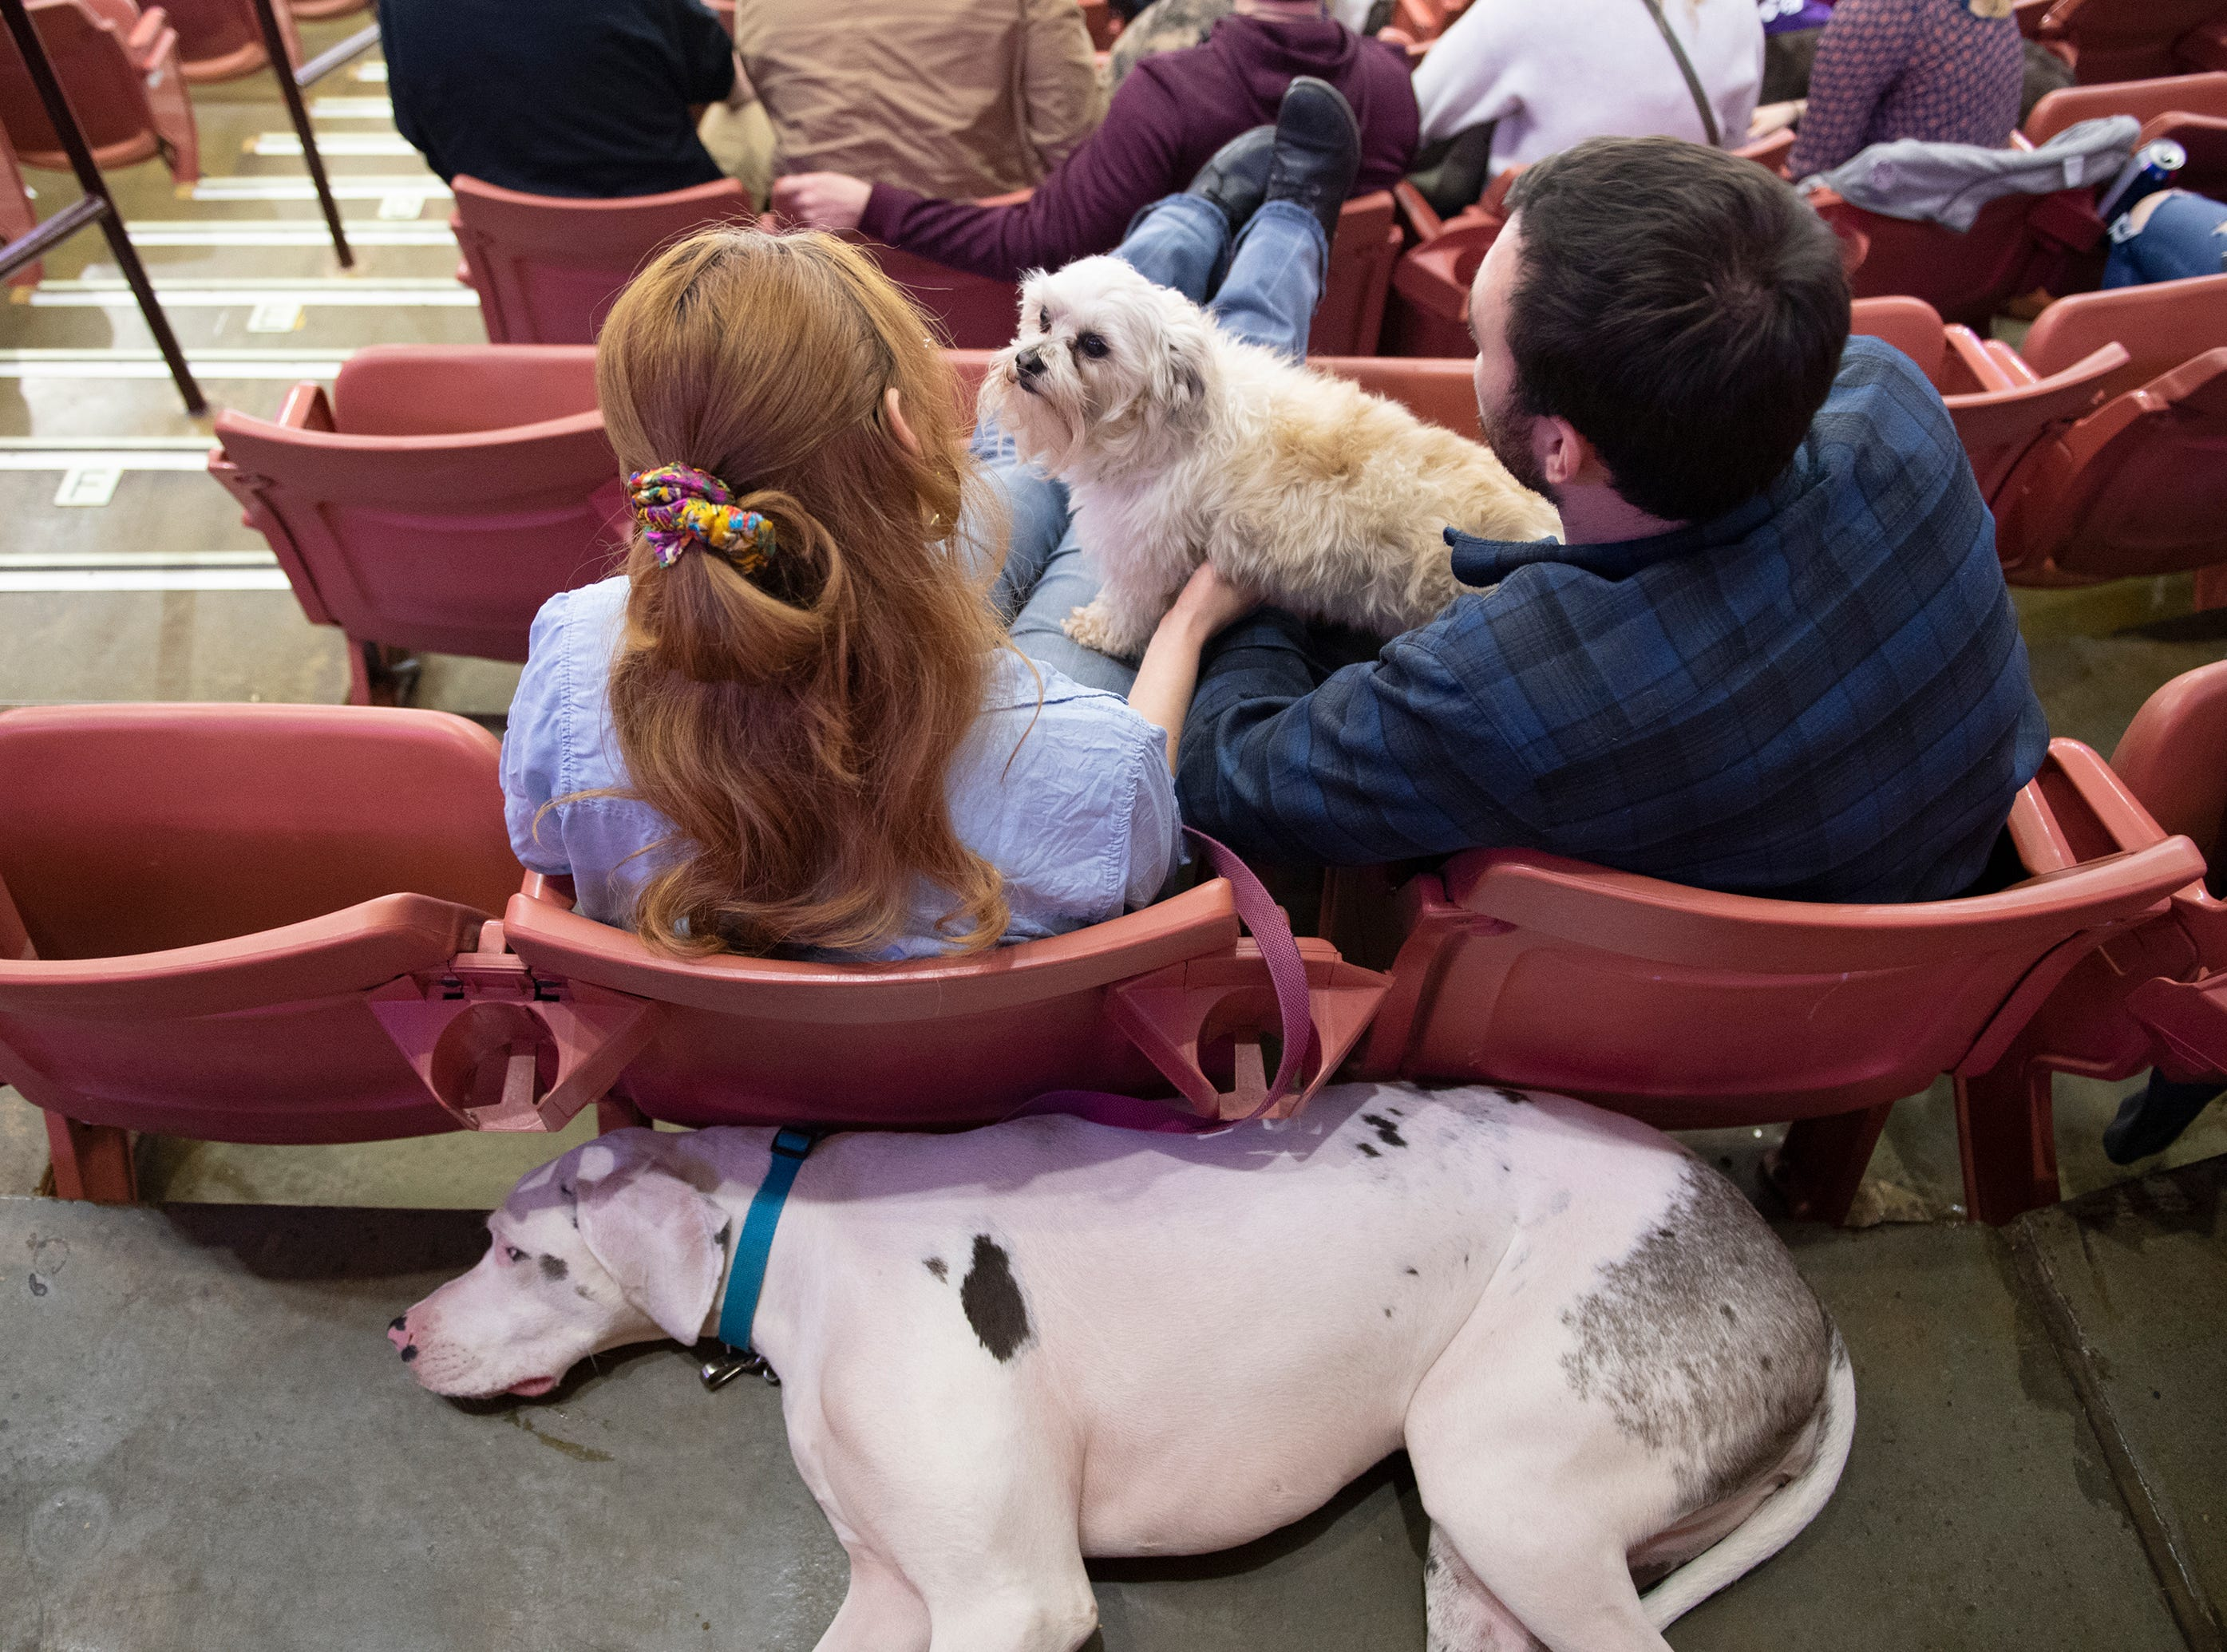 Beast sits with Sami Bruce and Tyler Bryant while Anna rests behind them during the Greenville Swamp Rabbits game against the Florida Everblades Saturday, Feb. 2, 2019. Saturday was Pucks N' Paws night at Bon Secours Wellness Arena.